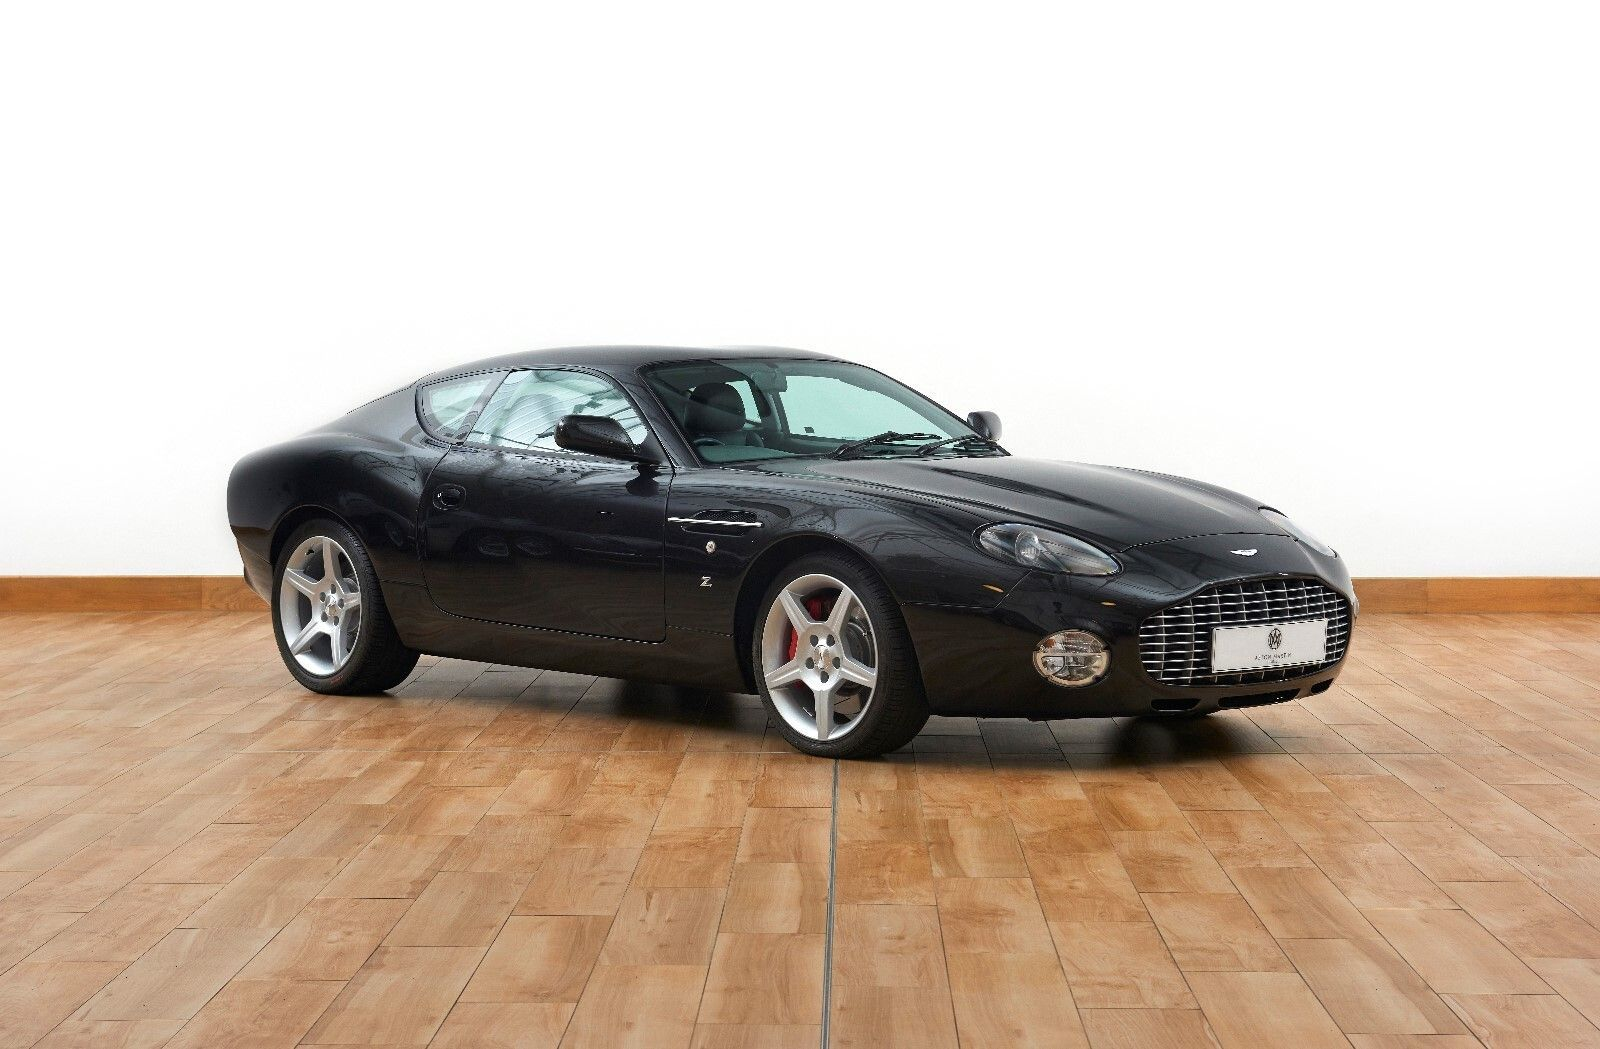 Aston Martin Db7 Zagato Used Search For Your Used Car On The Parking